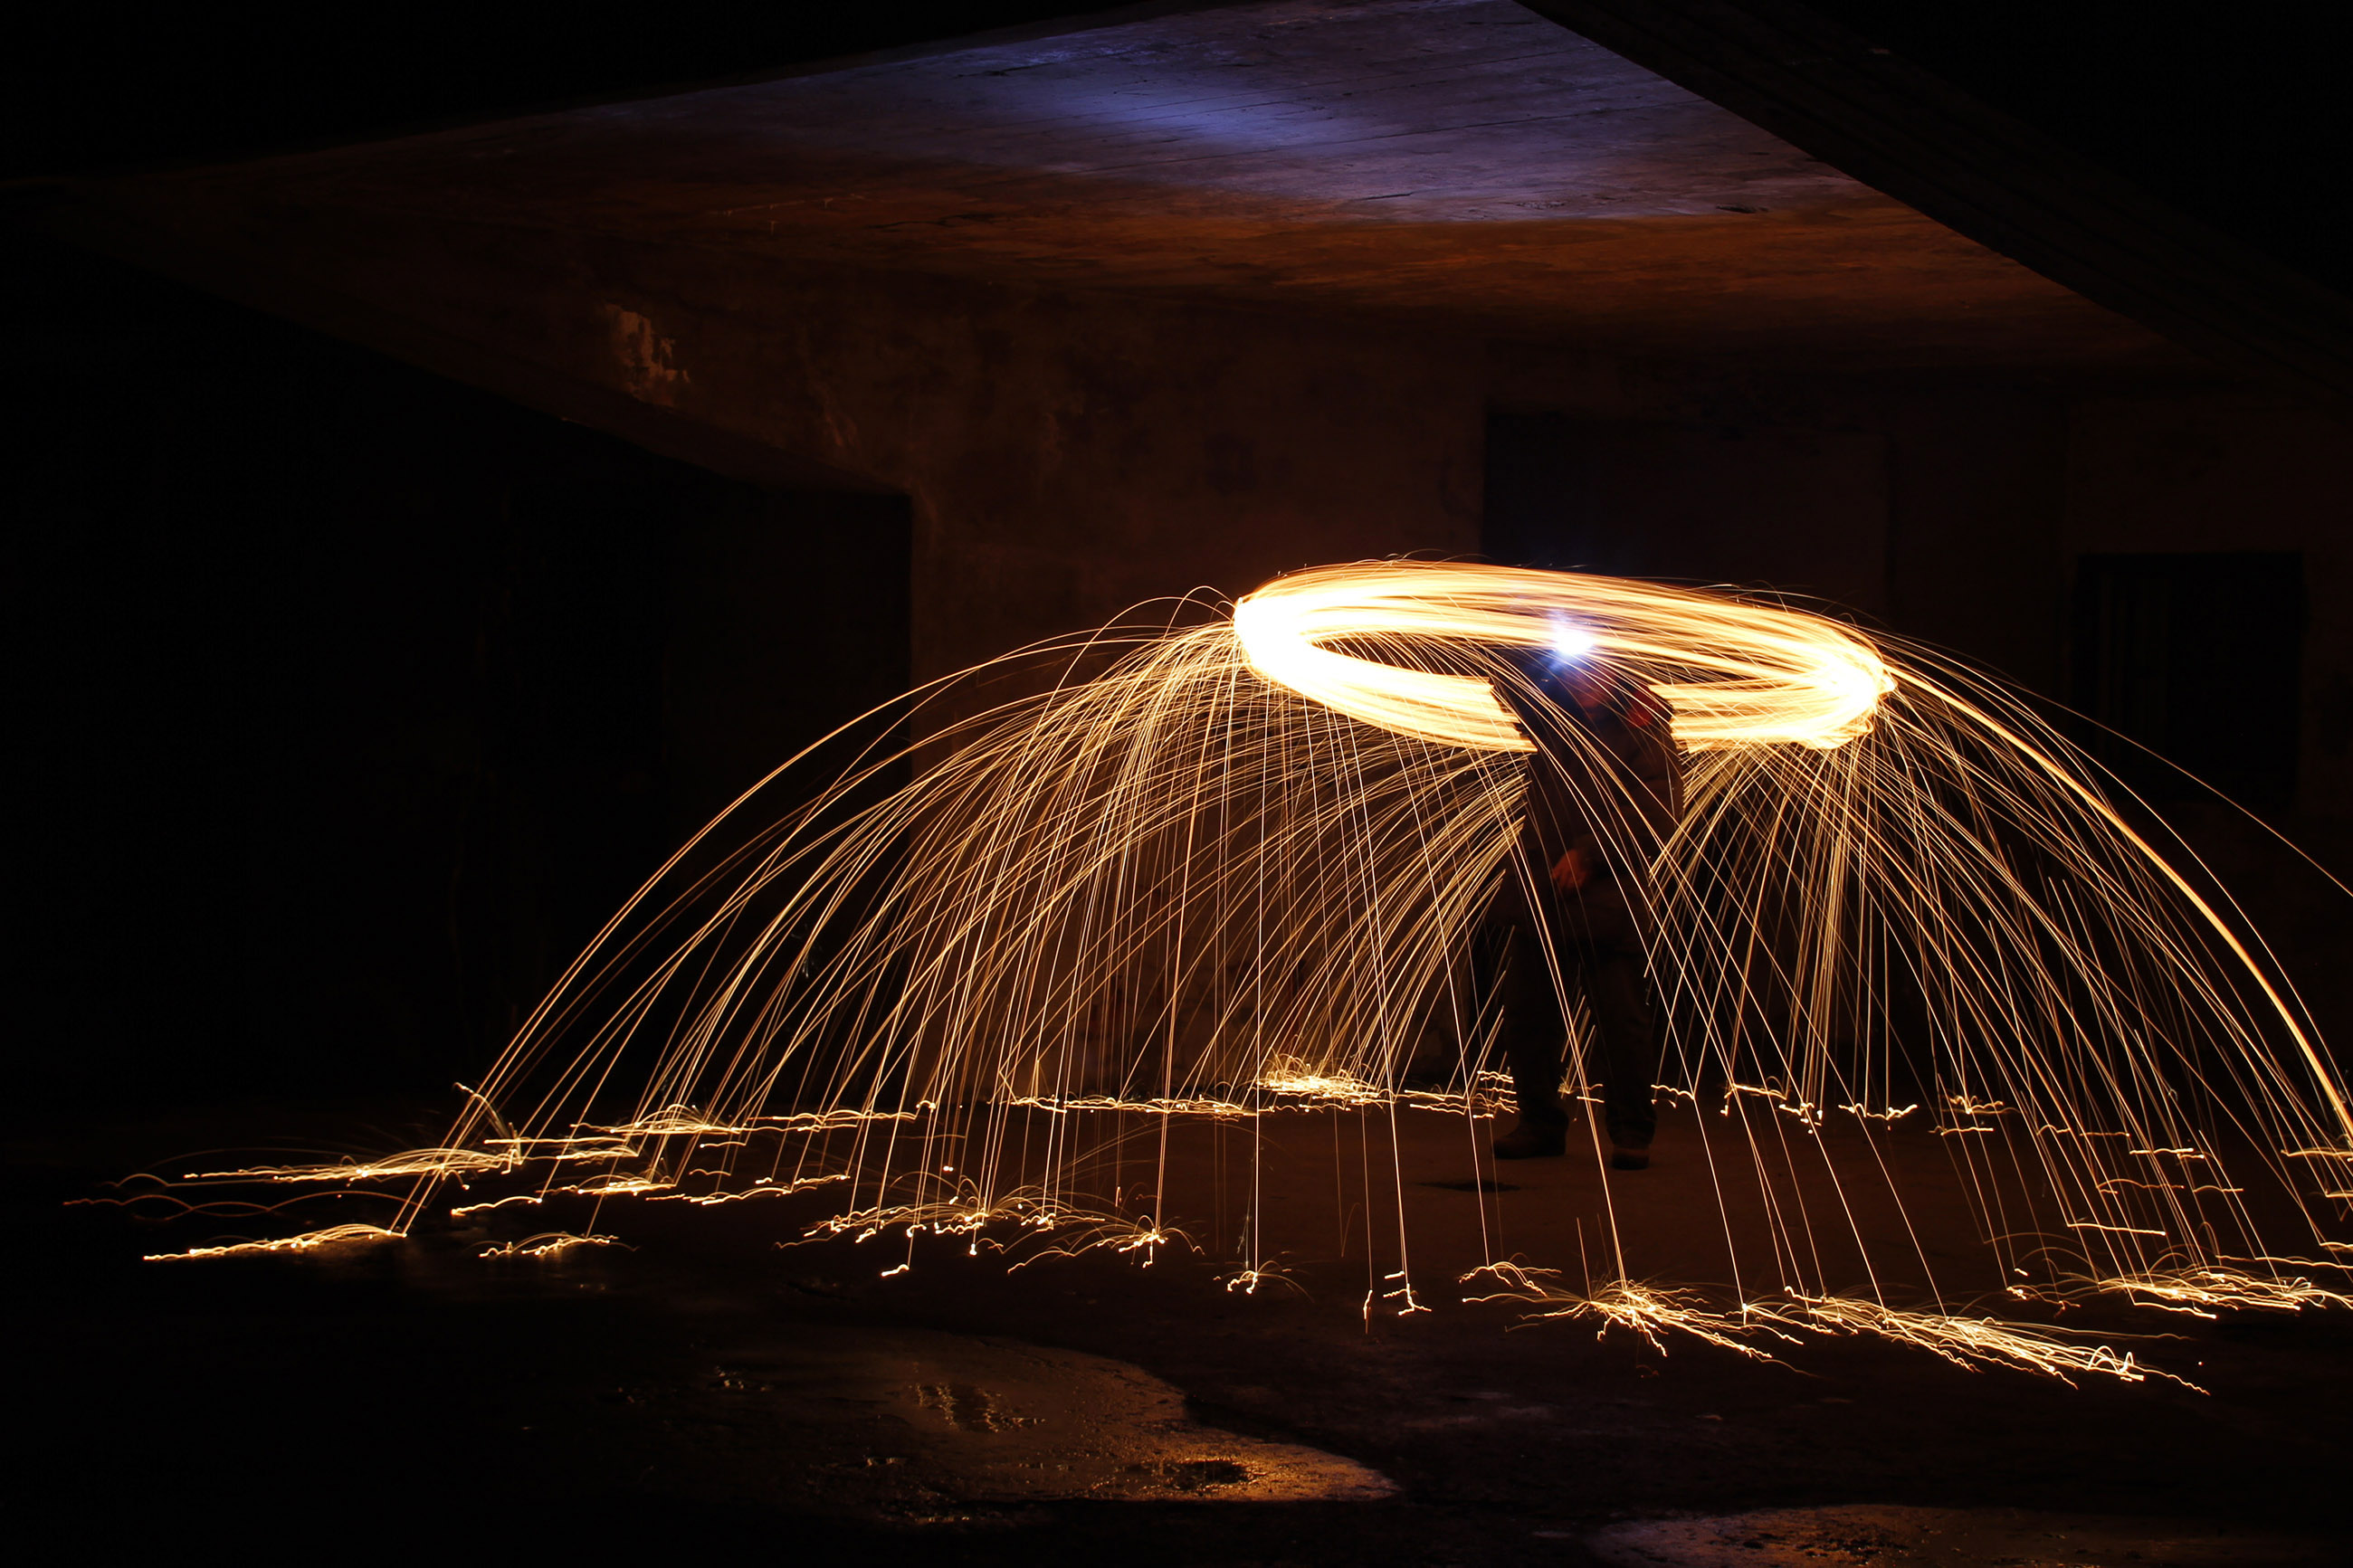 Light painting, Abstract, Photography, Light, Motion, HQ Photo